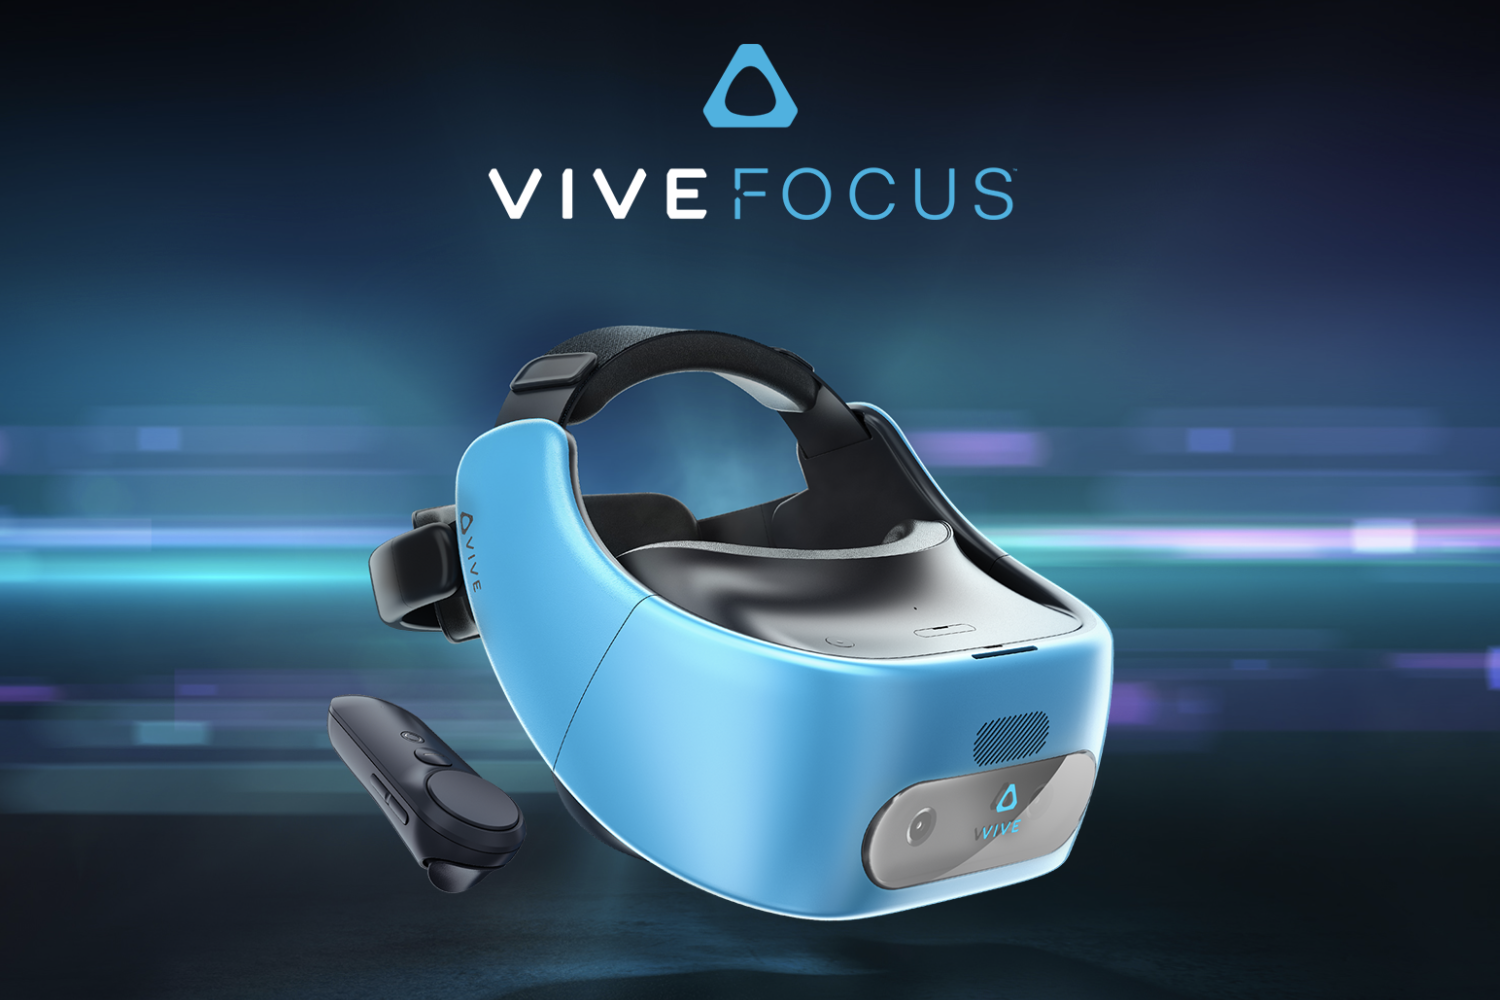 HTC's Vive Focus PC-less VR headset officially unveiled, disappoints